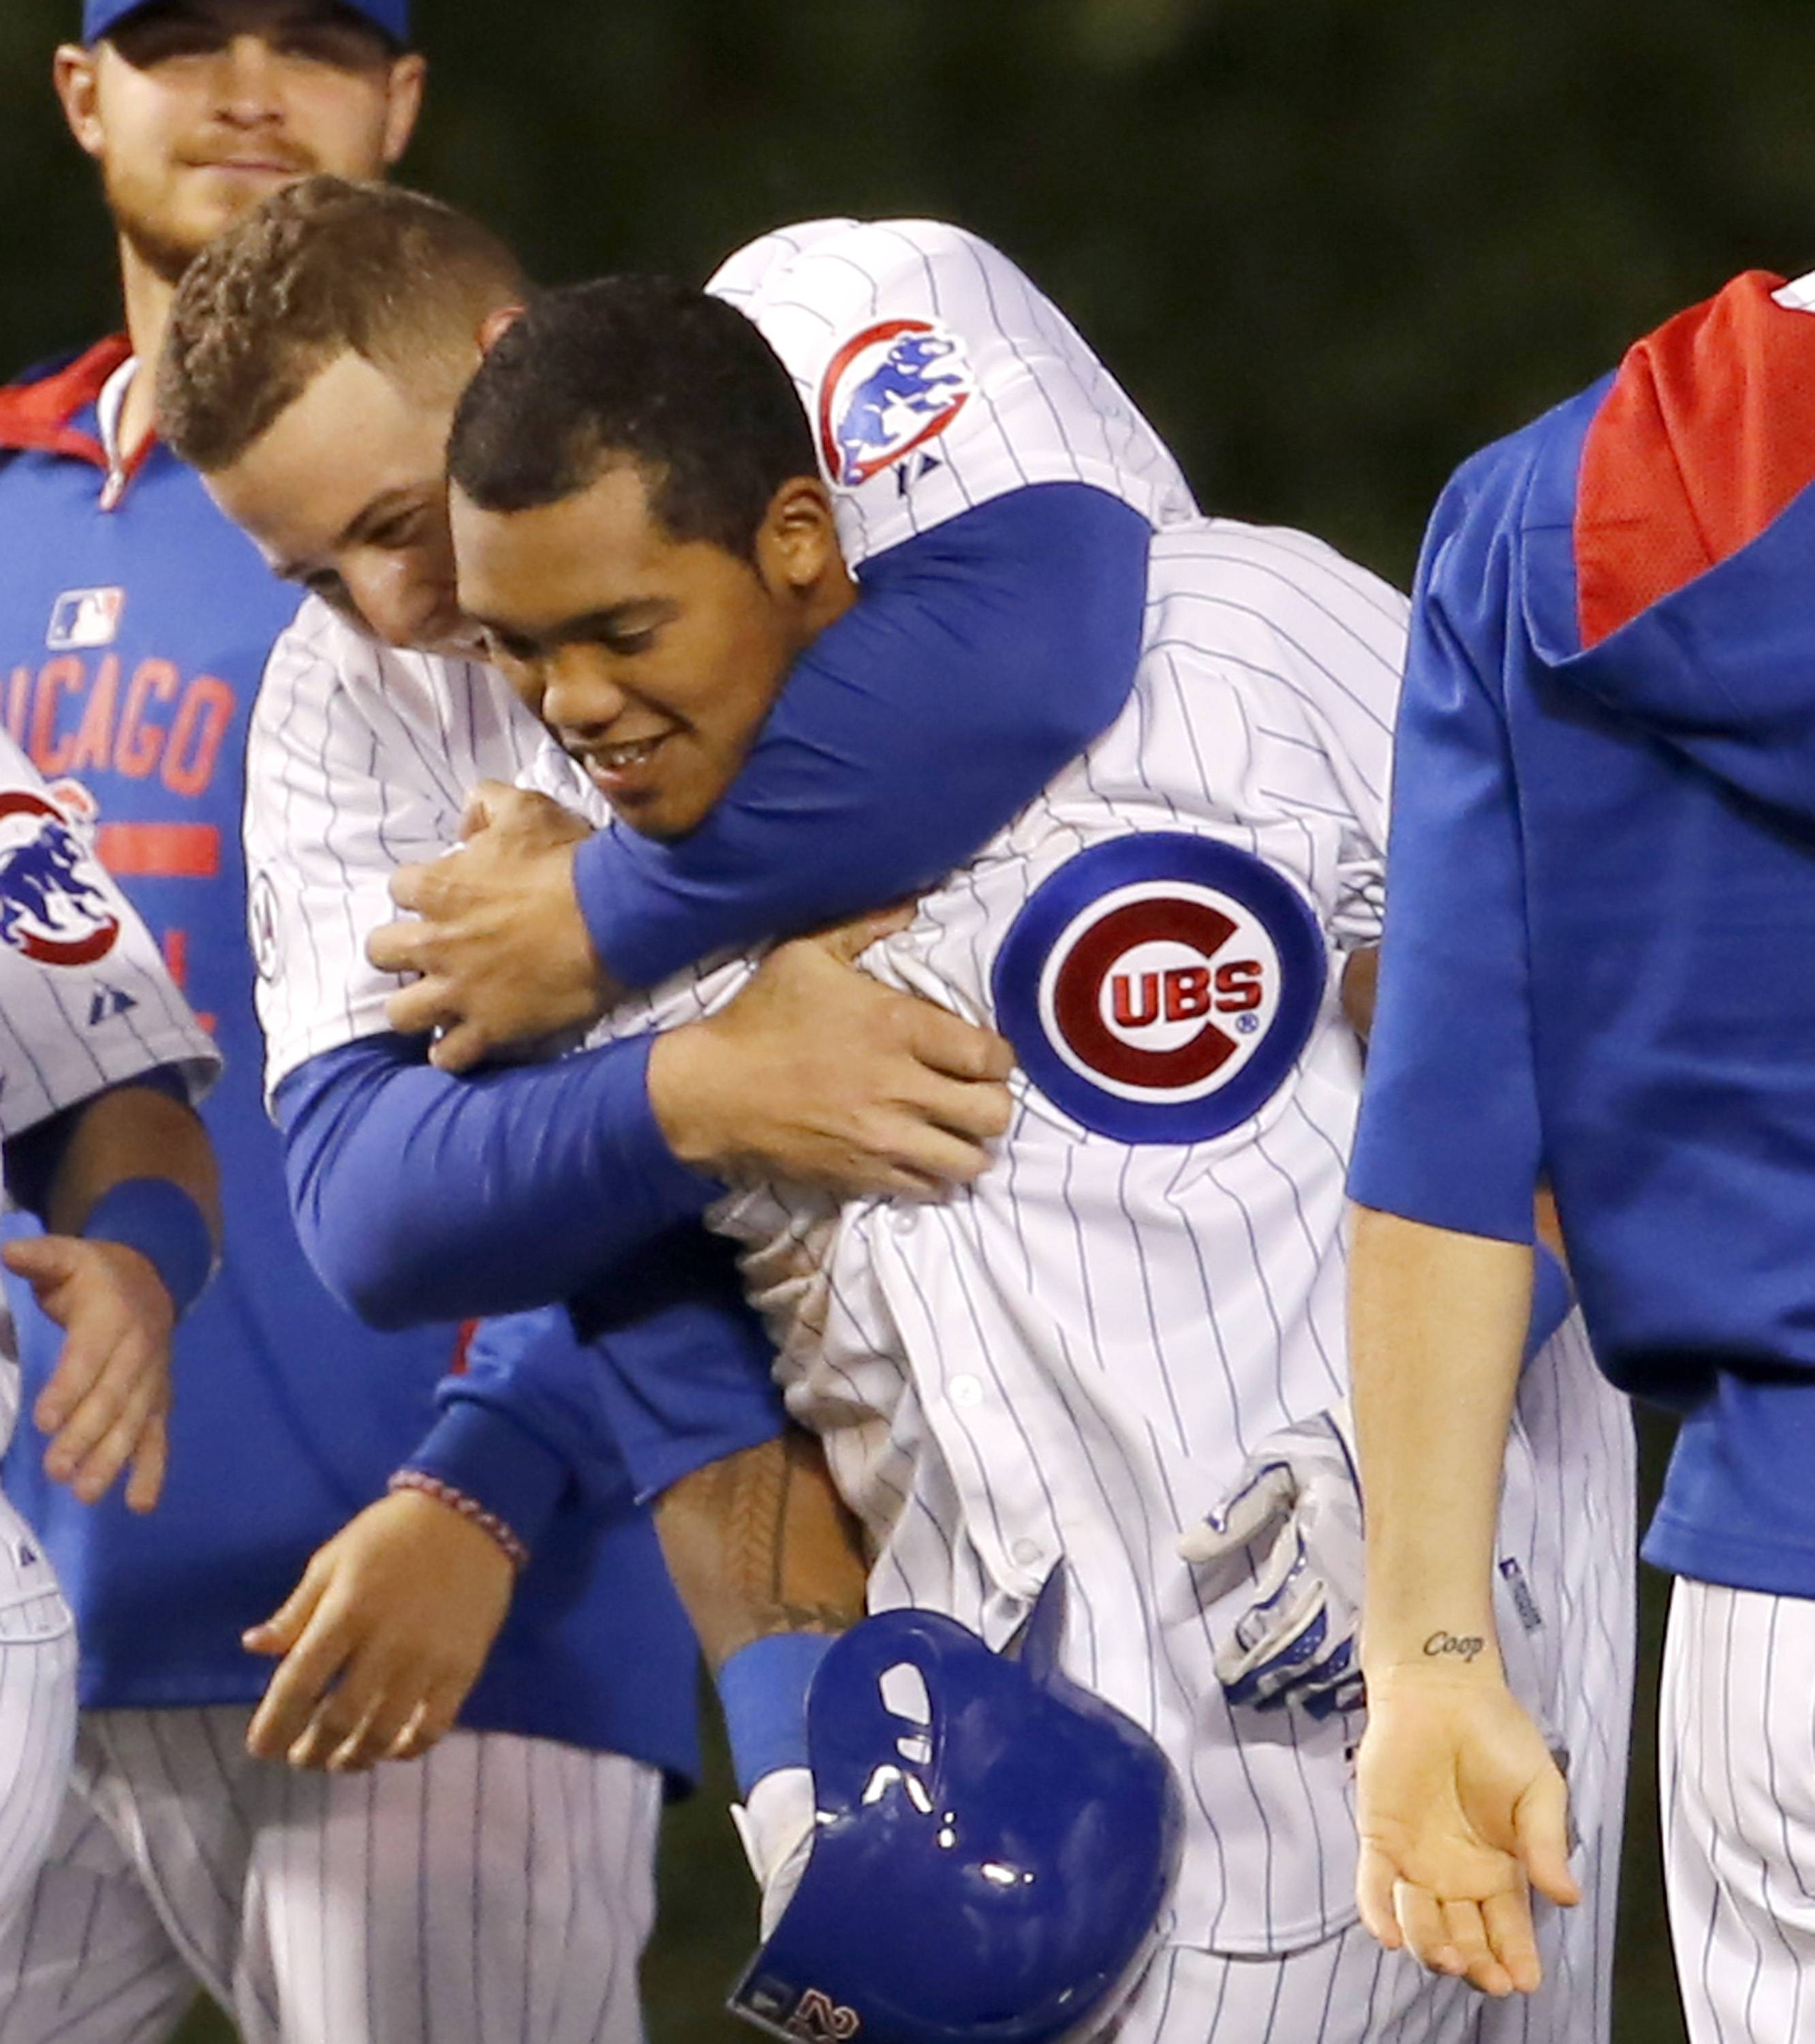 Anthony Rizzo, left, hugs Addison Russell after Russell's game winning double off Washington Nationals relief pitcher Matt Grace during the ninth inning of a baseball game Tuesday, May 26, 2015, in Chicago. Jonathan Herrera scored on the play giving the Cubs a 3-2 win.